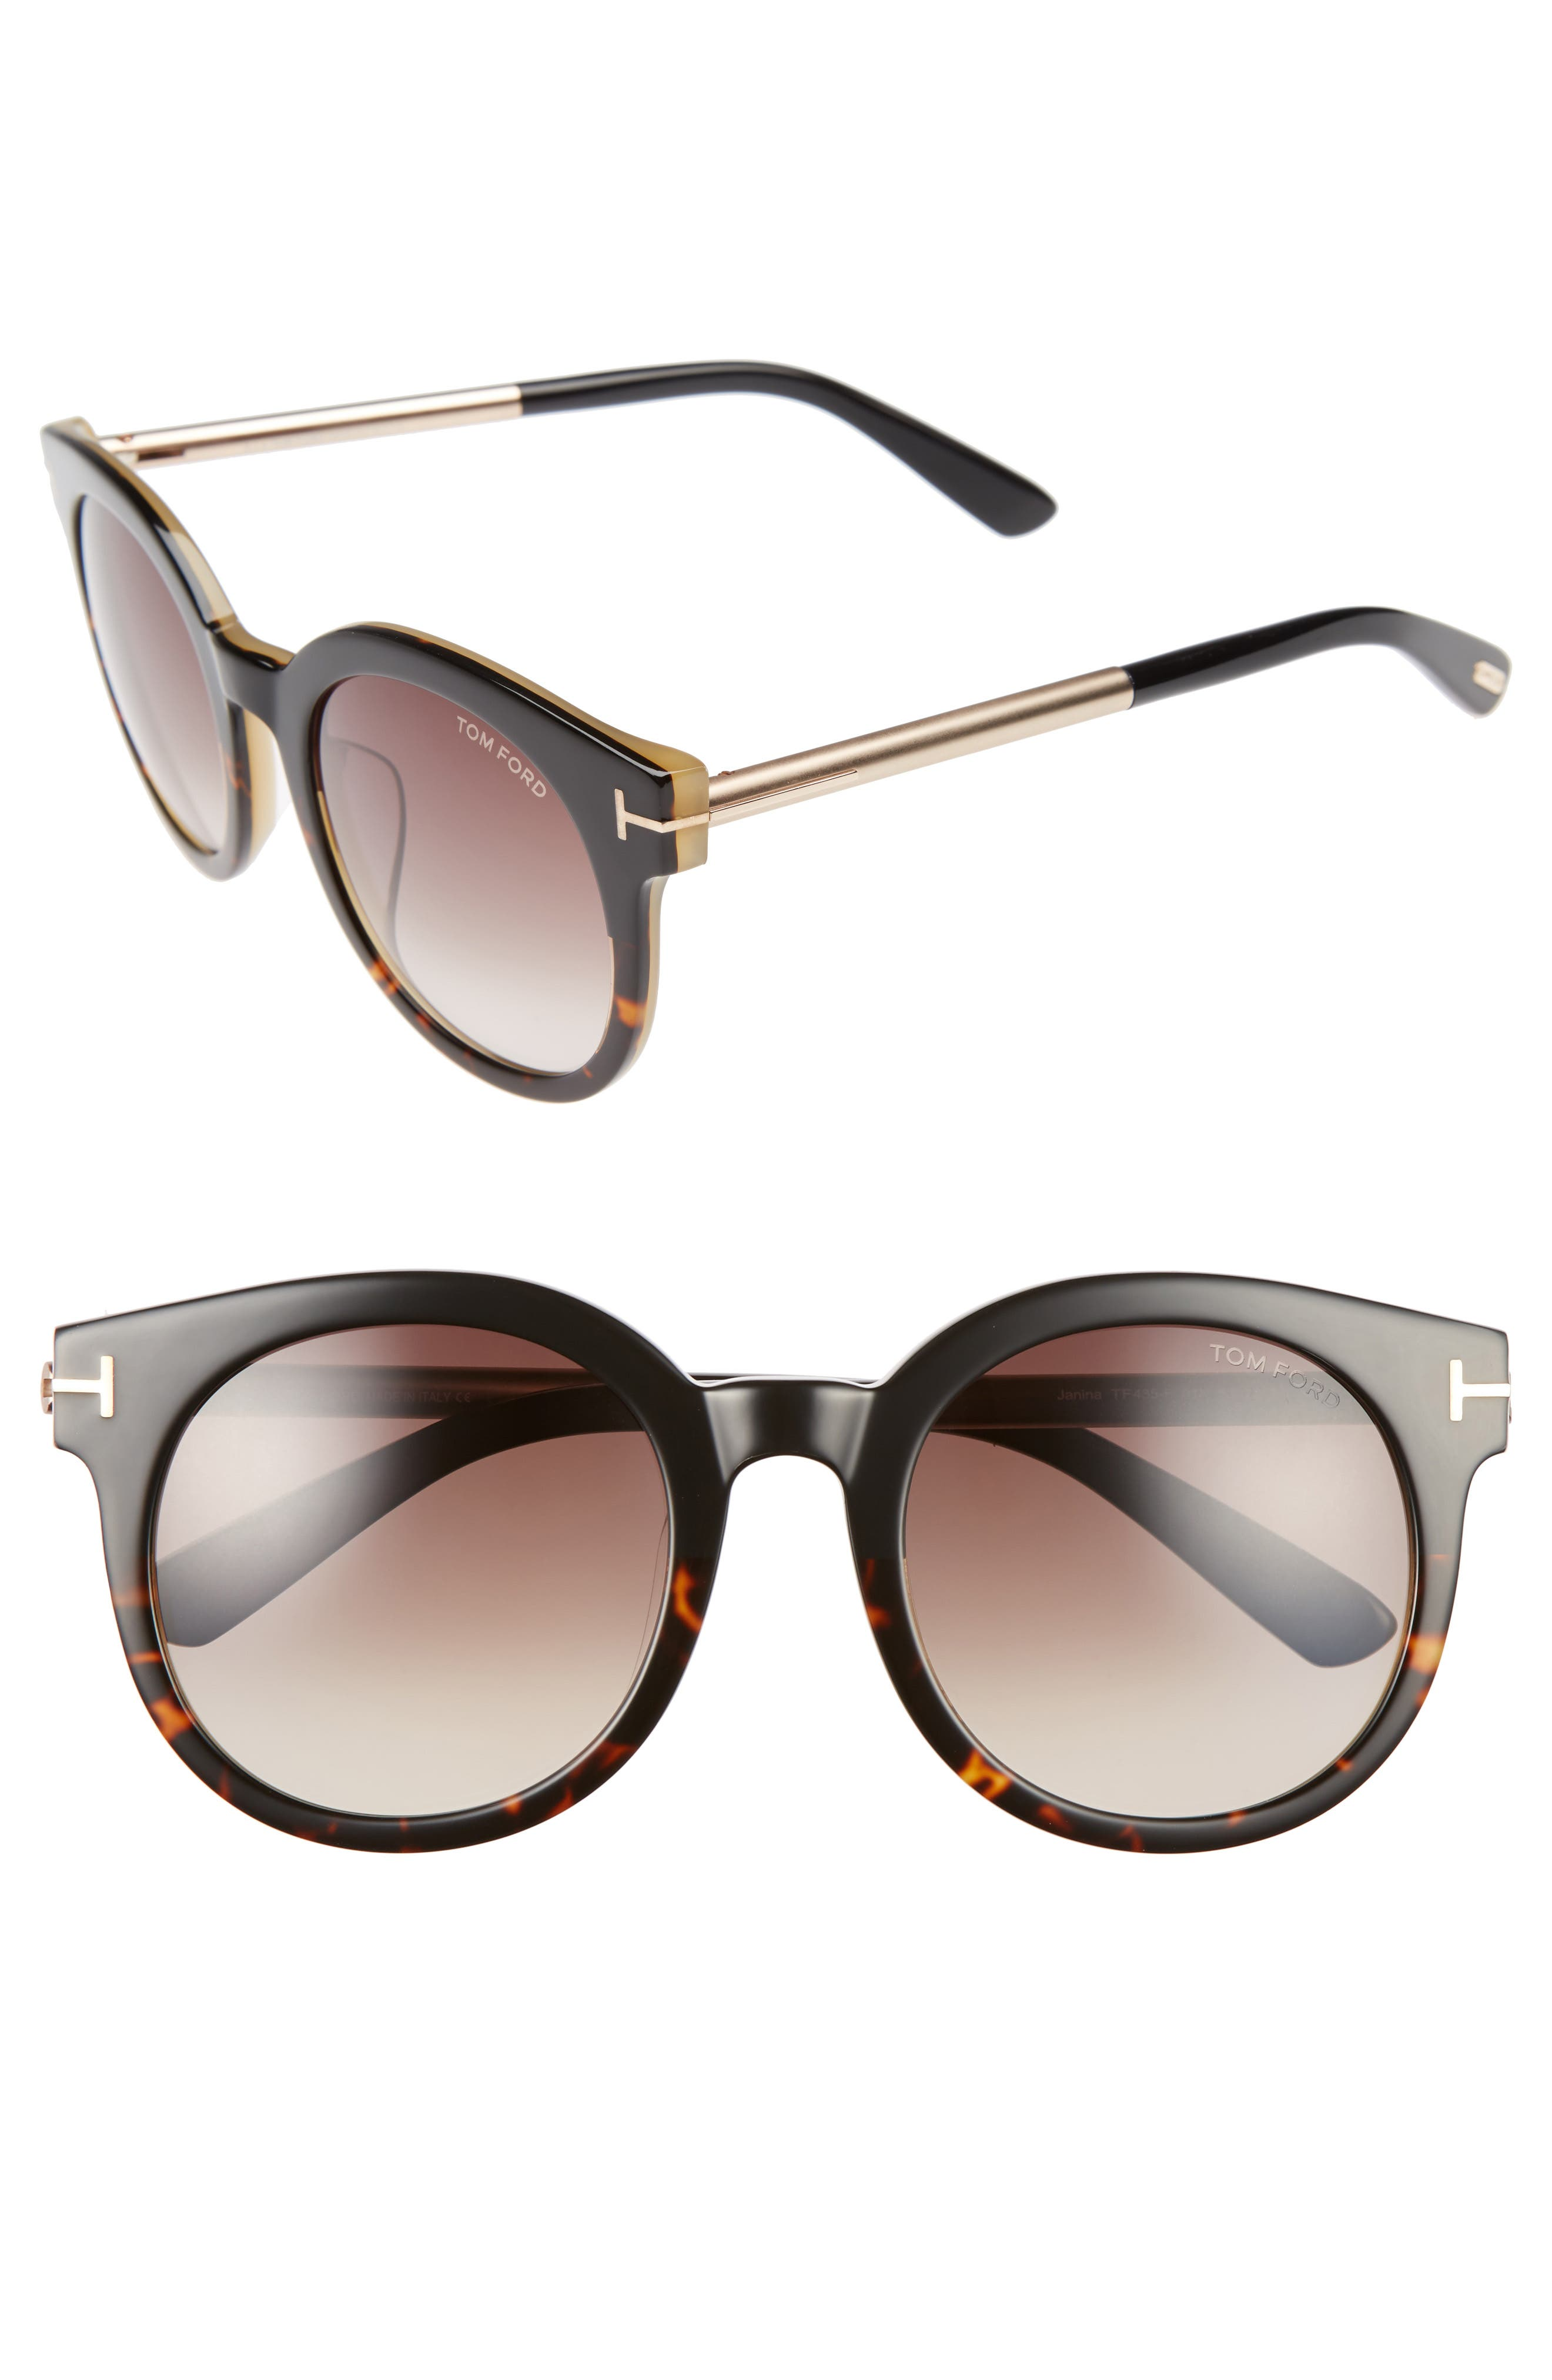 Janina 53mm Special Fit Round Sunglasses,                             Main thumbnail 1, color,                             001